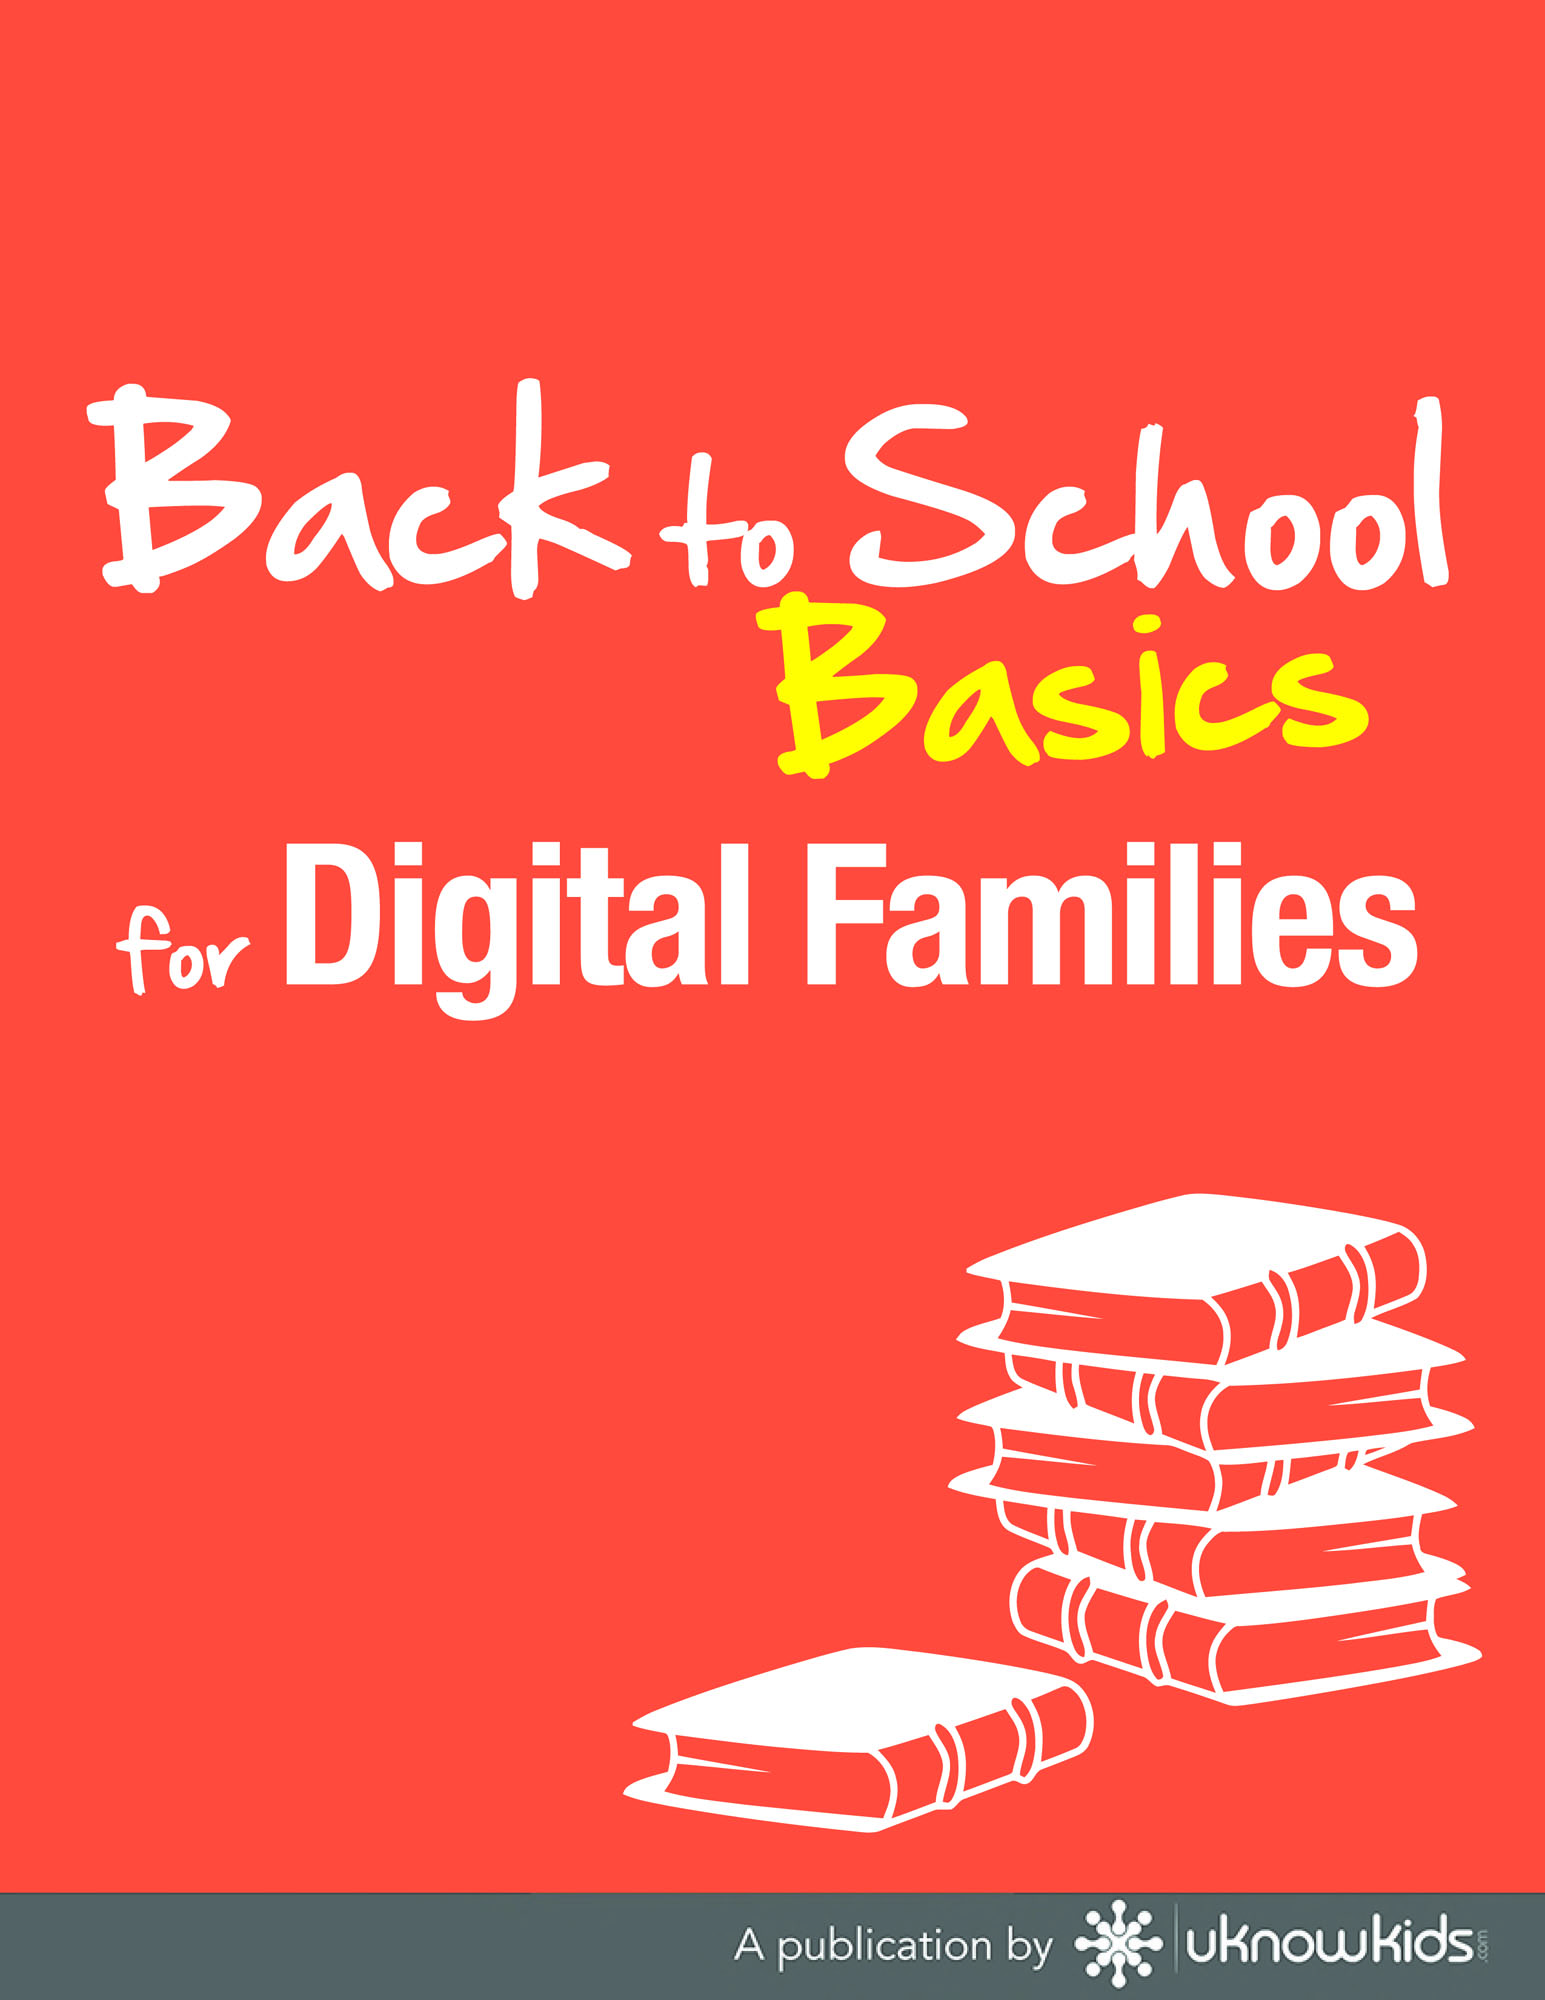 Back to School Basics for Digital Families